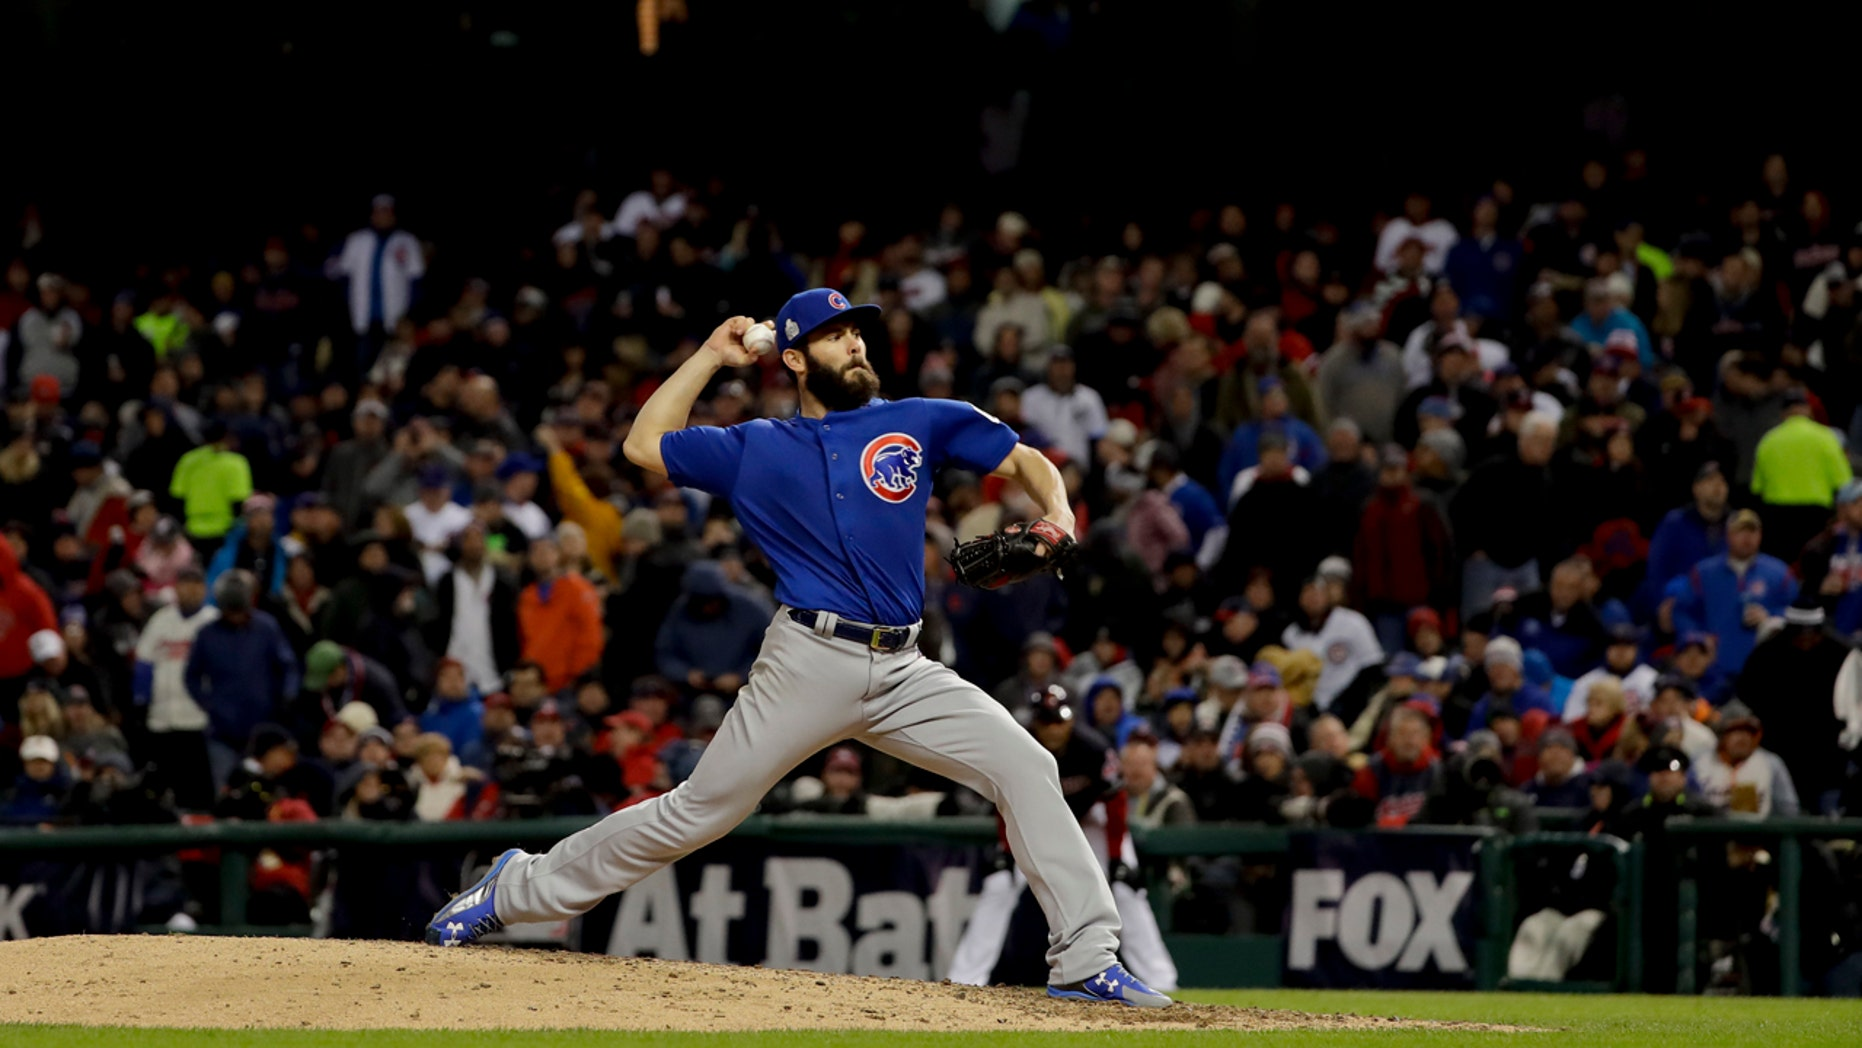 Oct. 26, 2016: Chicago Cubs starting pitcher Jake Arrieta throws against the Cleveland Indians during the sixth inning of Game 2 of the World Series